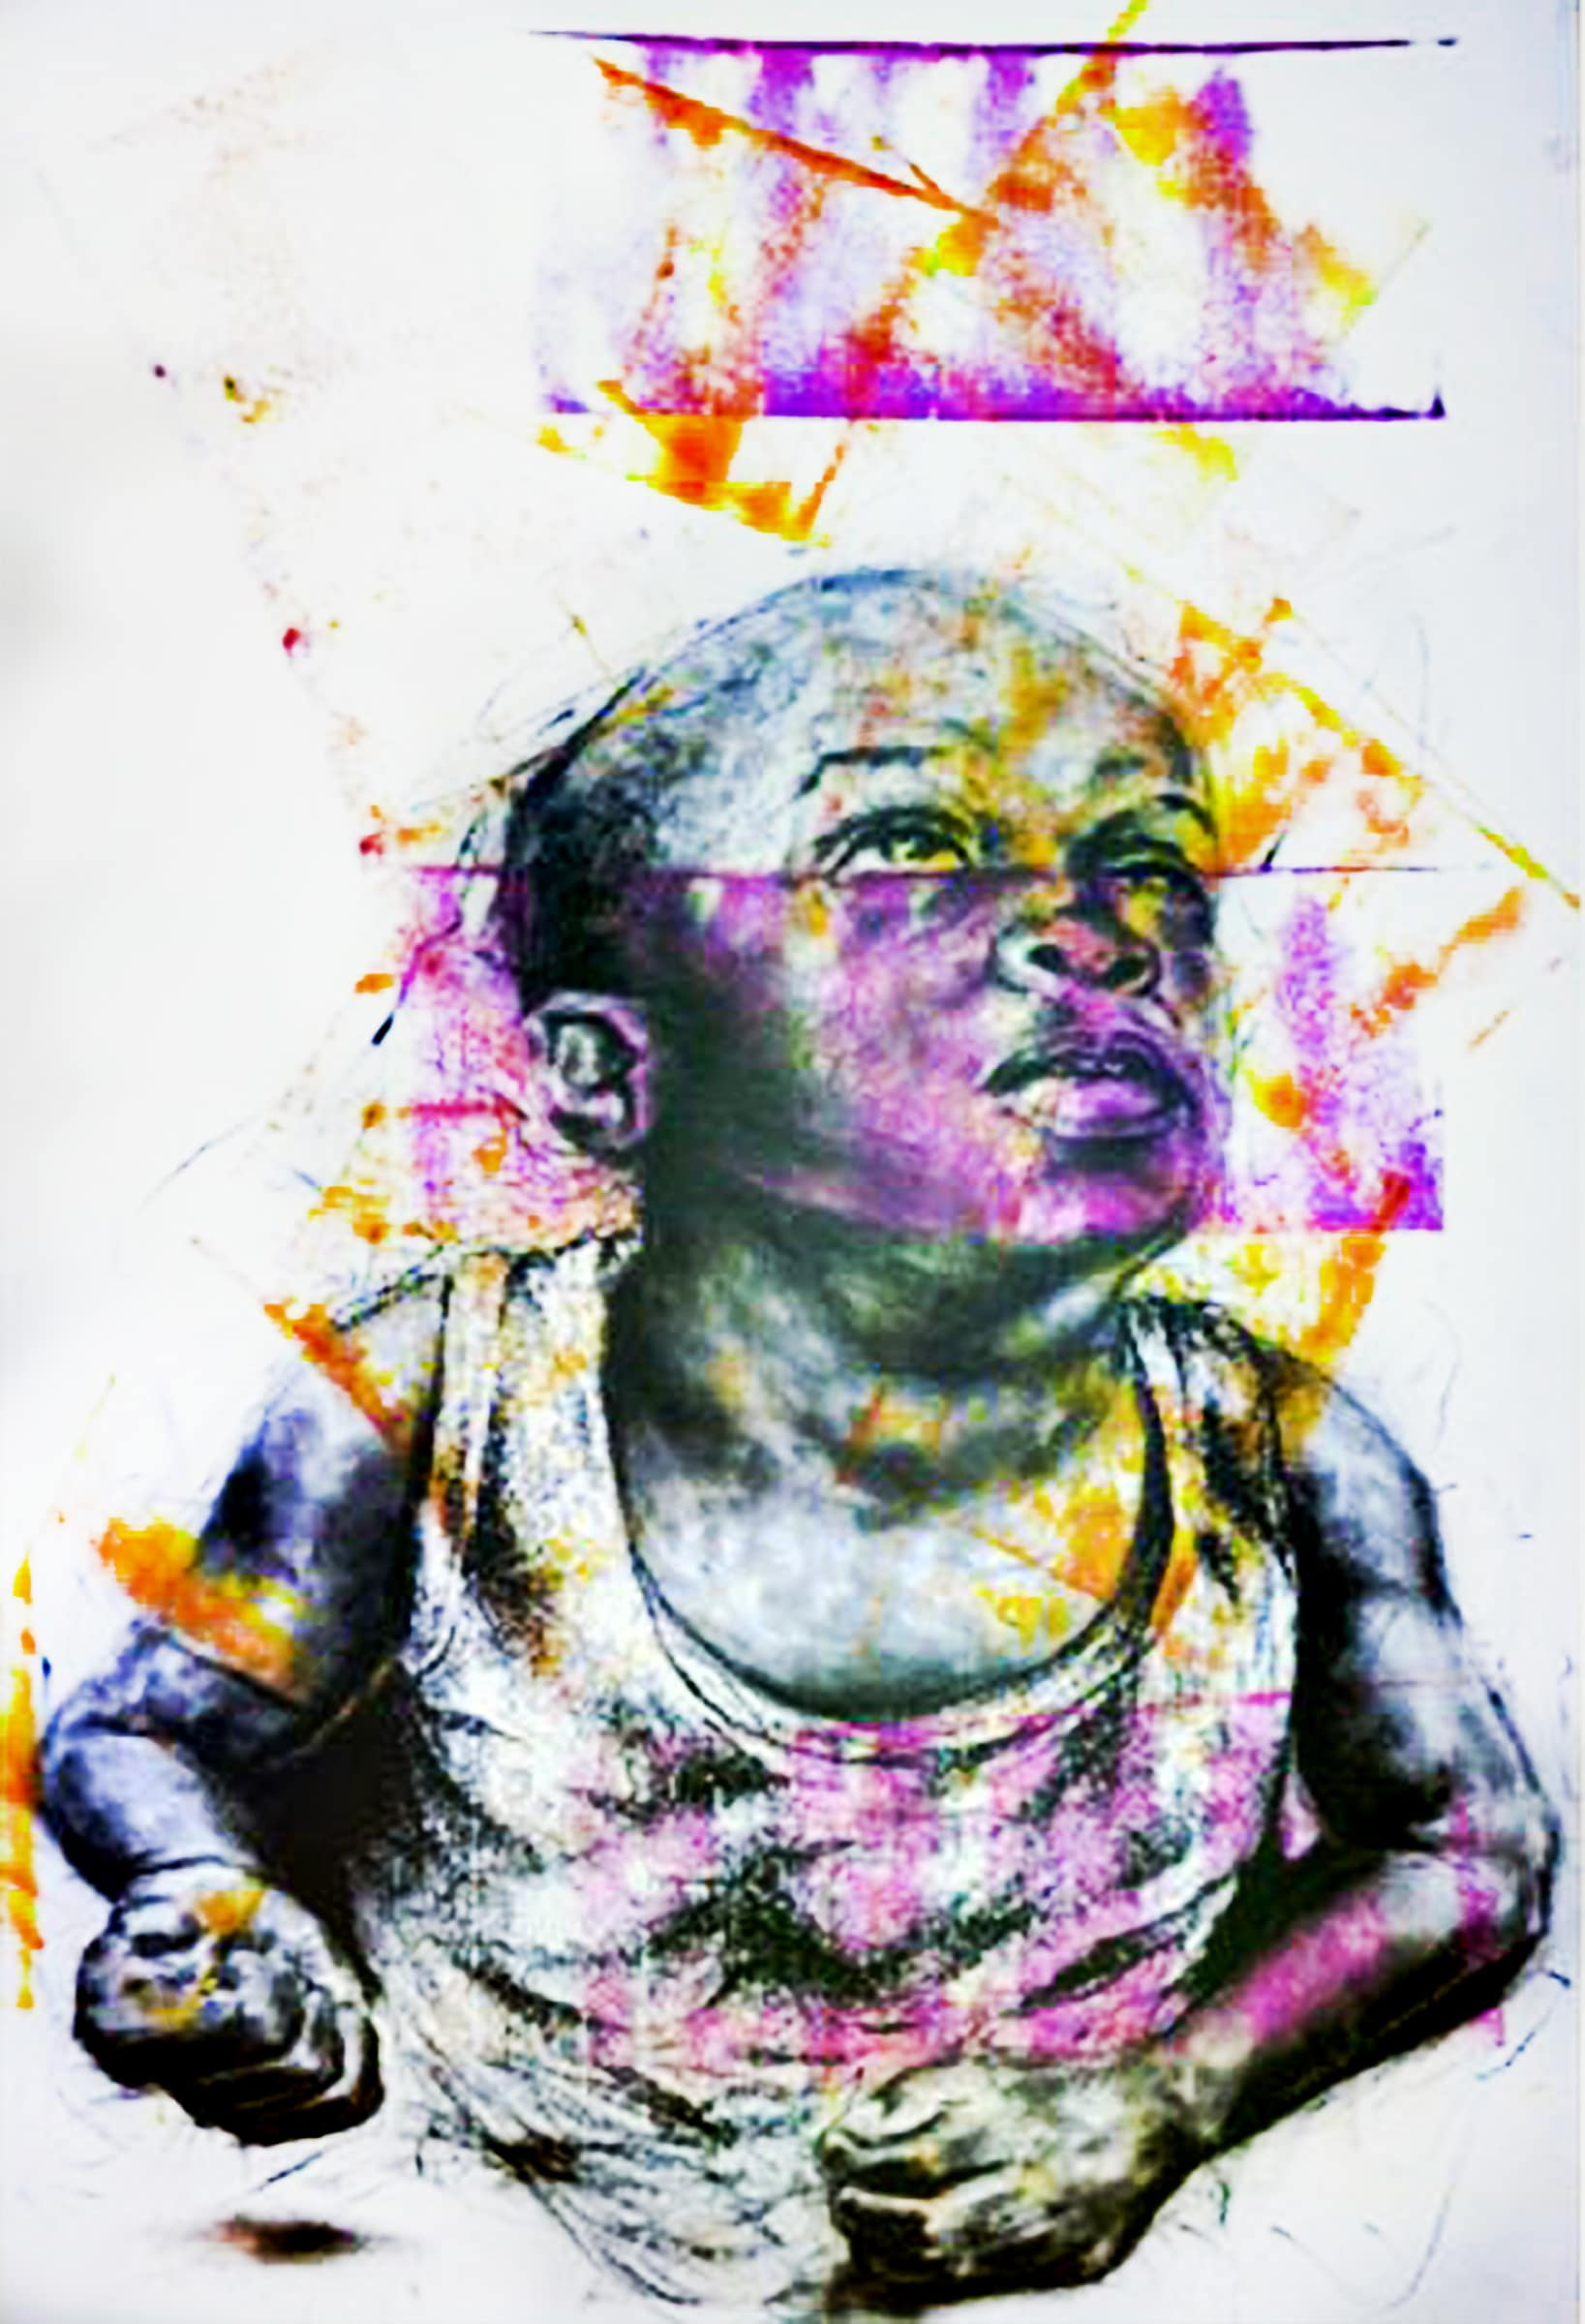 <span class=&#34;link fancybox-details-link&#34;><a href=&#34;/artworks/categories/121/3157-mlamuli-mkhwanazi-who-he-looks-up-to-child-2015/&#34;>View Detail Page</a></span><div class=&#34;artist&#34;><strong>Mlamuli Mkhwanazi</strong></div> <div class=&#34;title&#34;><em>Who He Looks Up To (Child)</em>, 2015</div> <div class=&#34;medium&#34;>Charcoal & Ink On Paper</div> <div class=&#34;dimensions&#34;>118cm x 80cm</div><div class=&#34;price&#34;>R22,000.00</div>